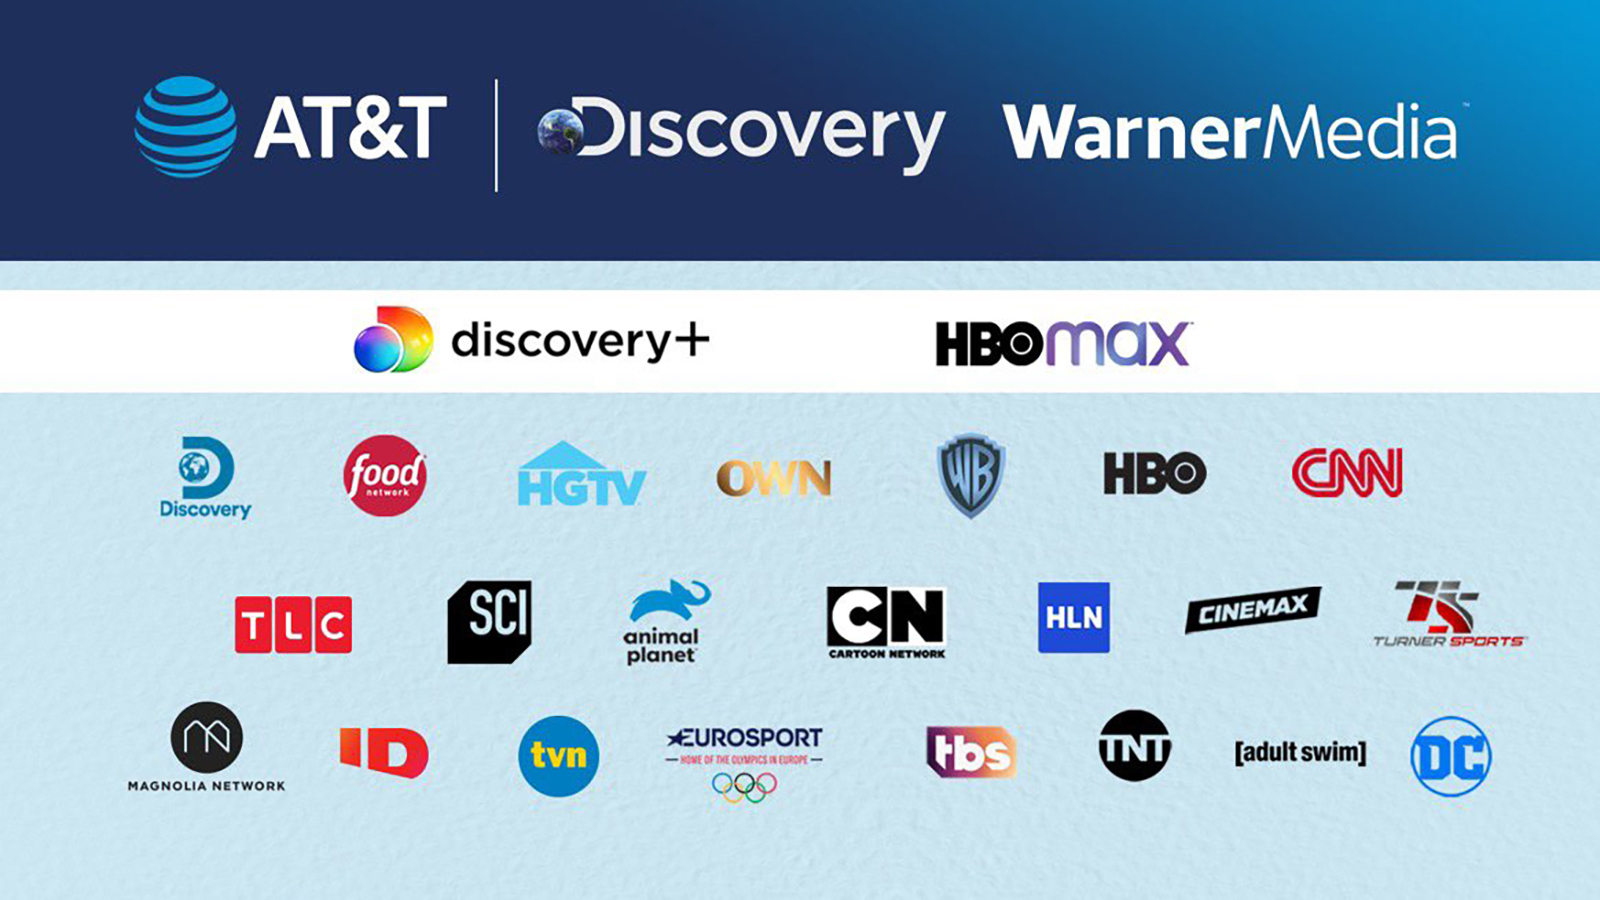 Why you should care about Discovery and WarnerMedia merging